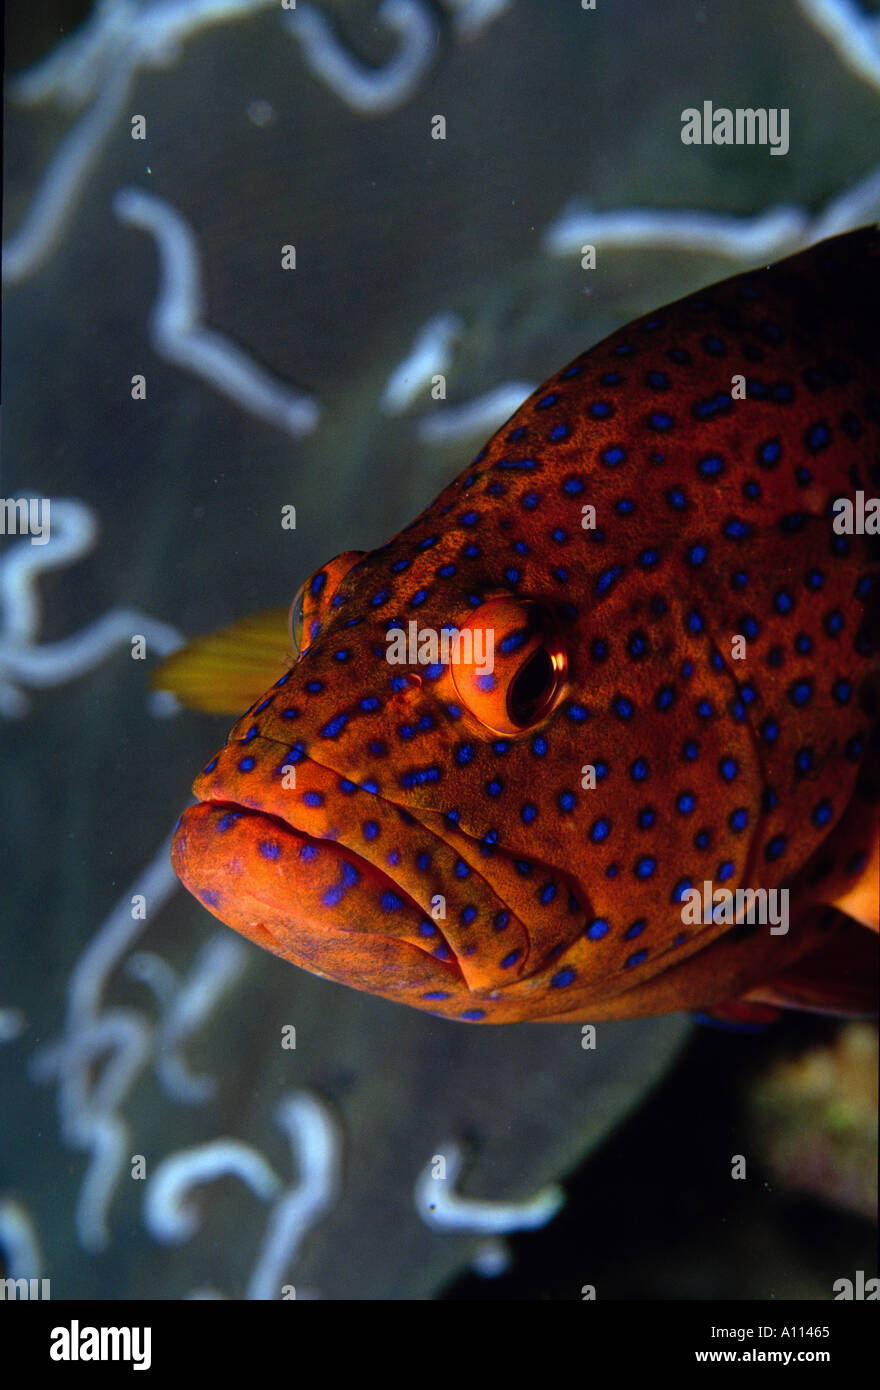 Orange Fish Lips Stock Photos & Orange Fish Lips Stock Images - Alamy